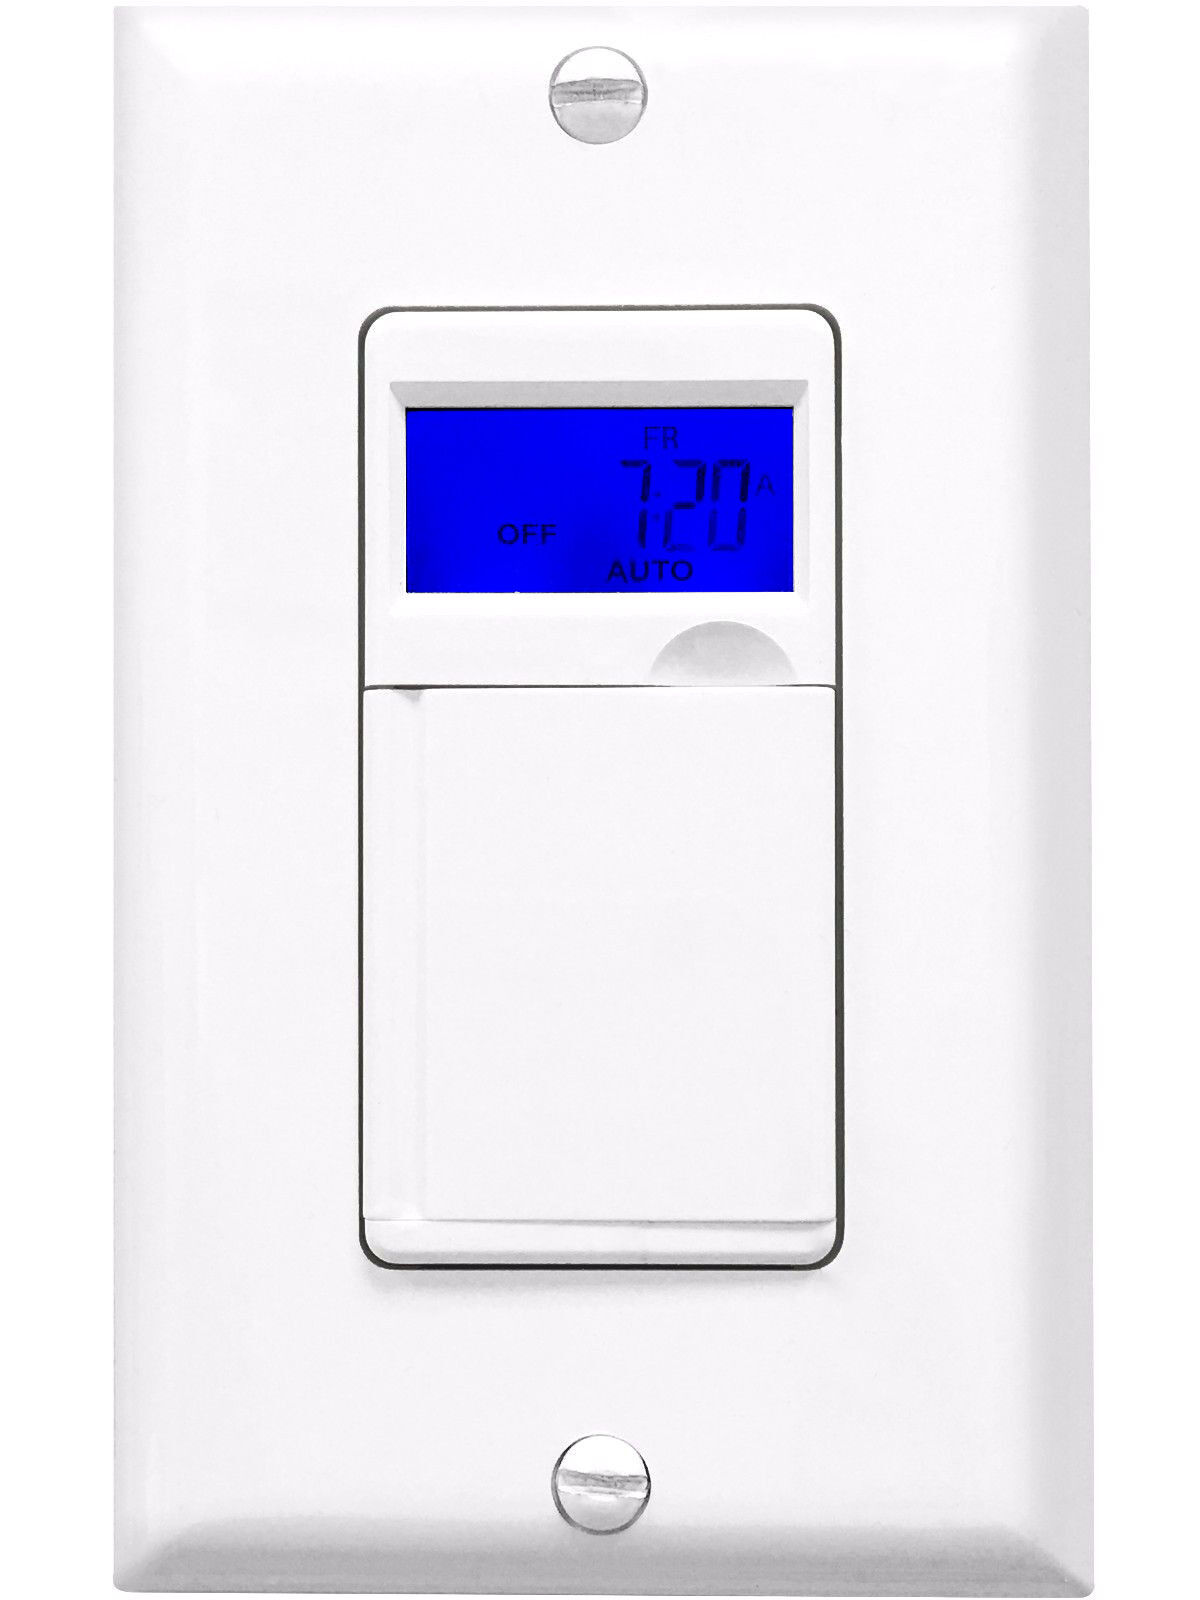 7 day programmable timer switch for motors and appliances white with blue lcd ebay. Black Bedroom Furniture Sets. Home Design Ideas